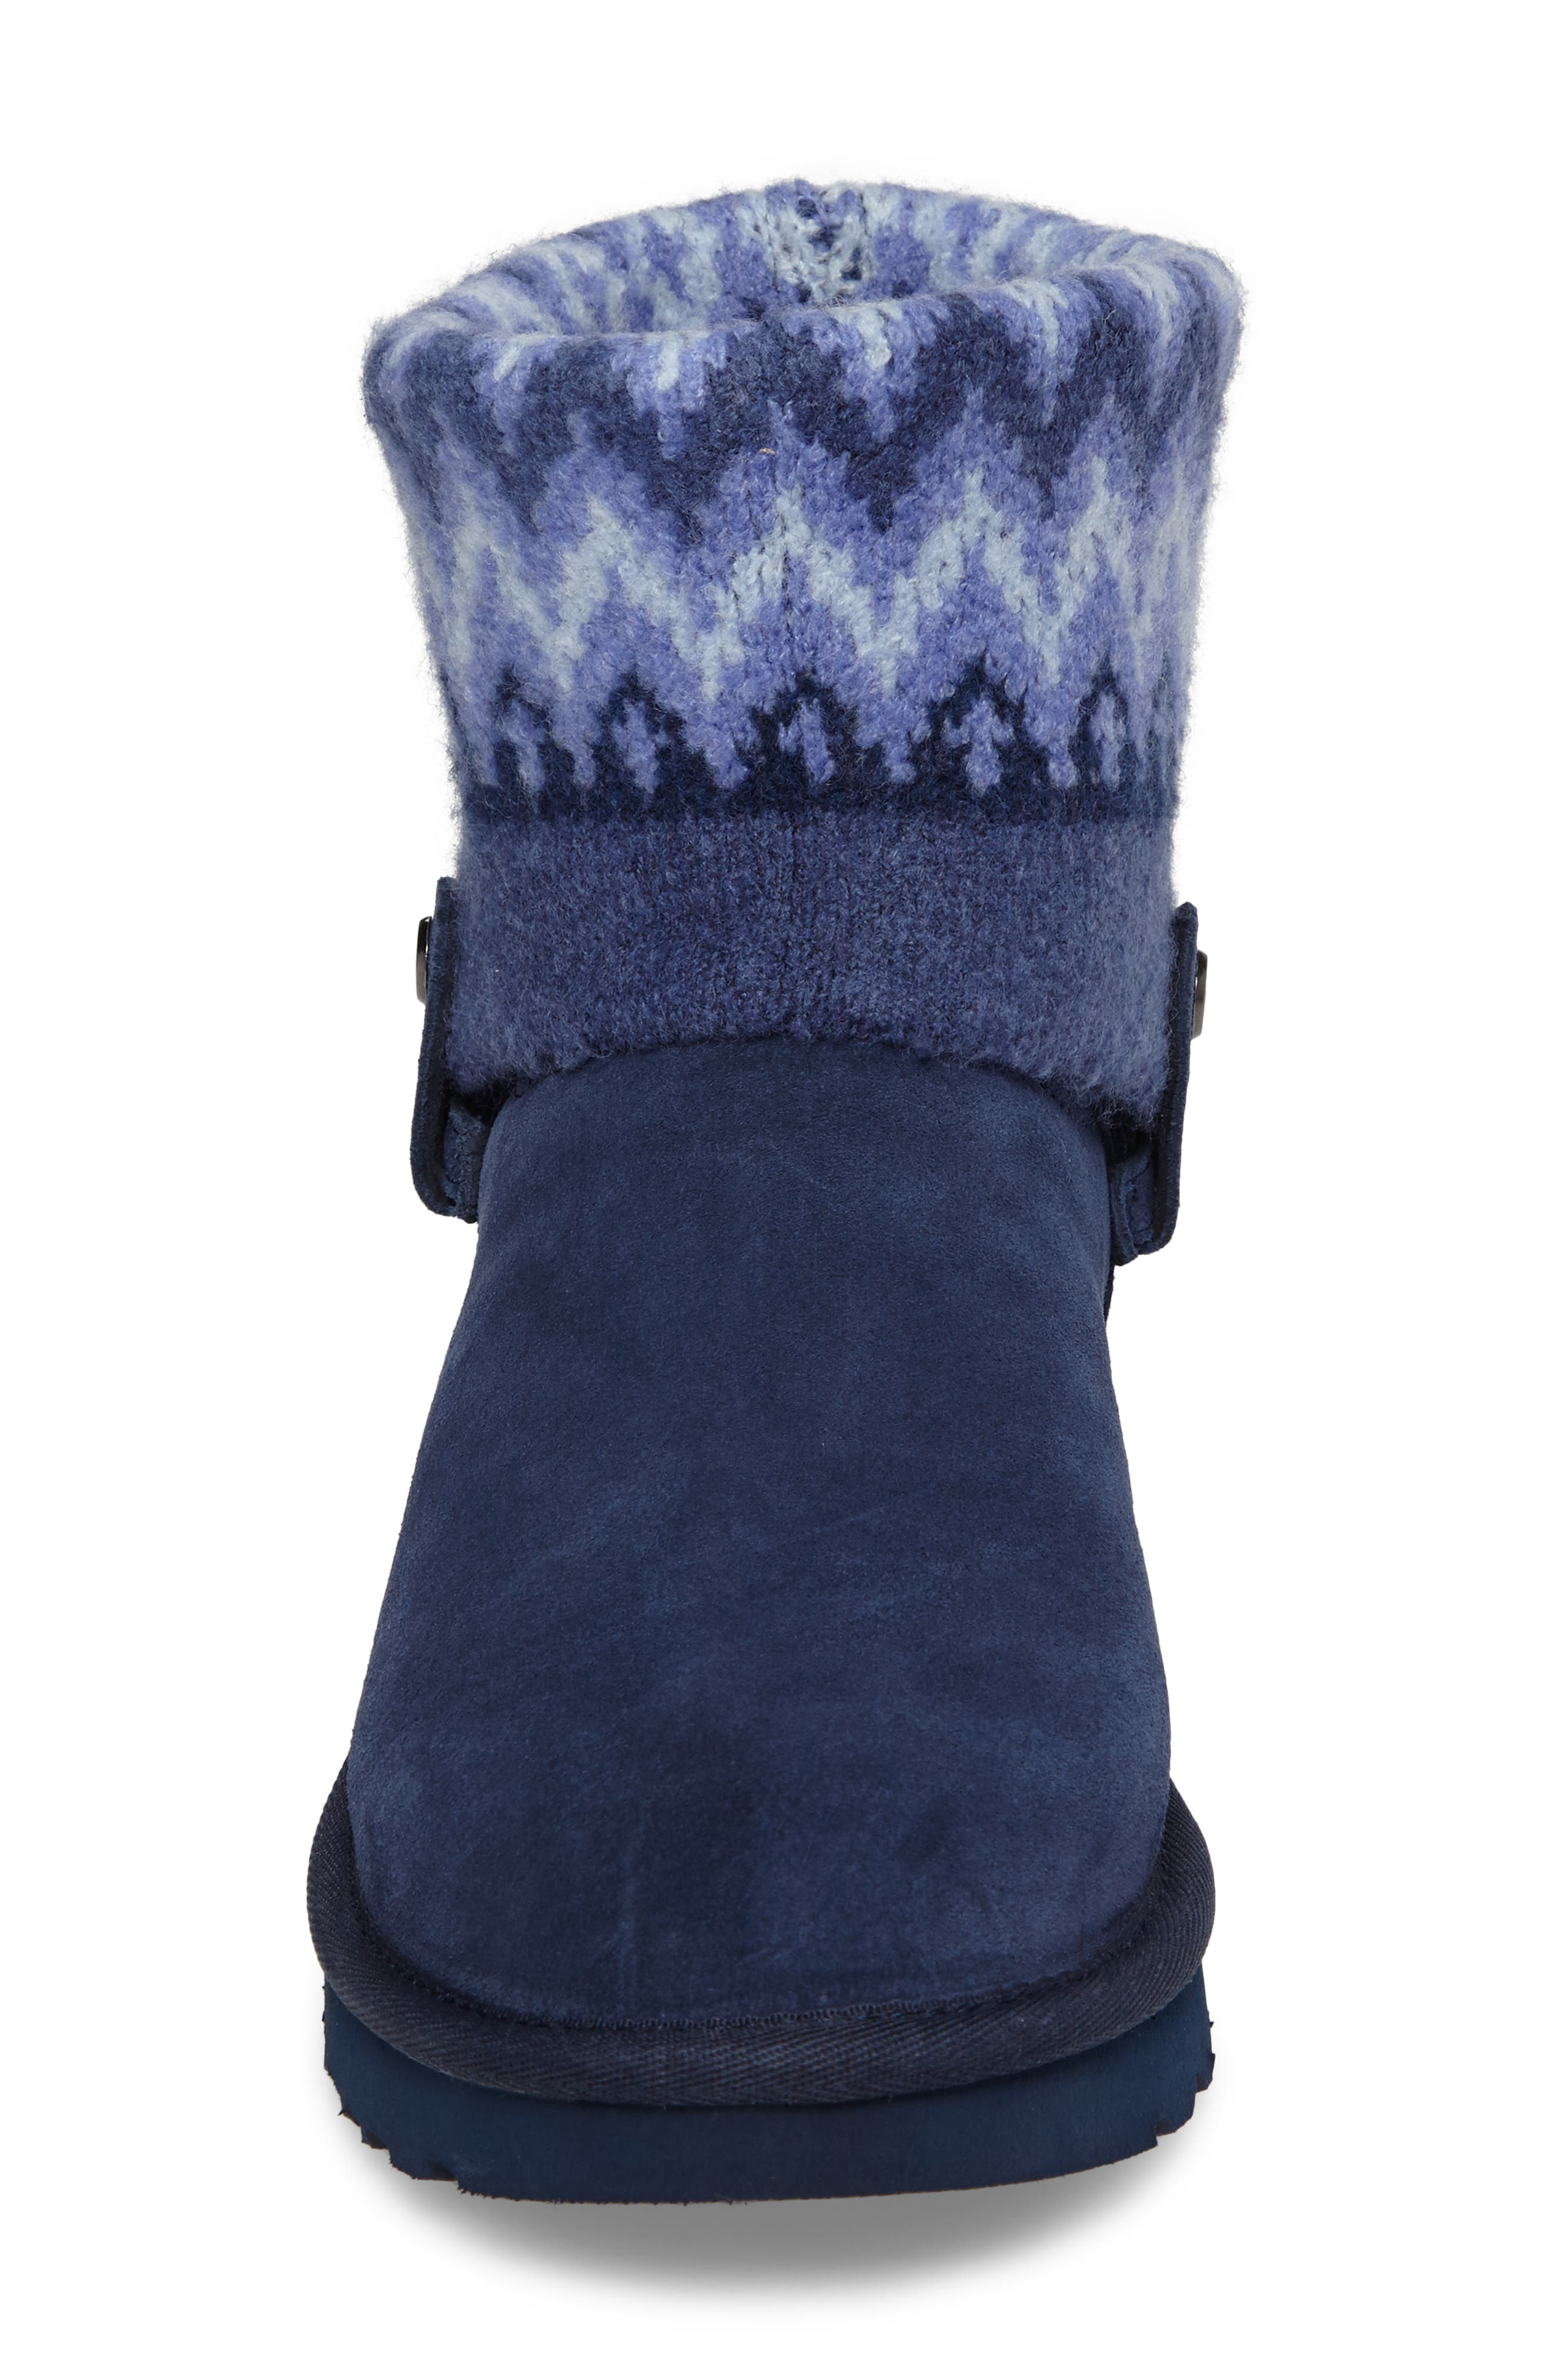 Saela Icelandic Boot,                             Alternate thumbnail 4, color,                             Navy Suede